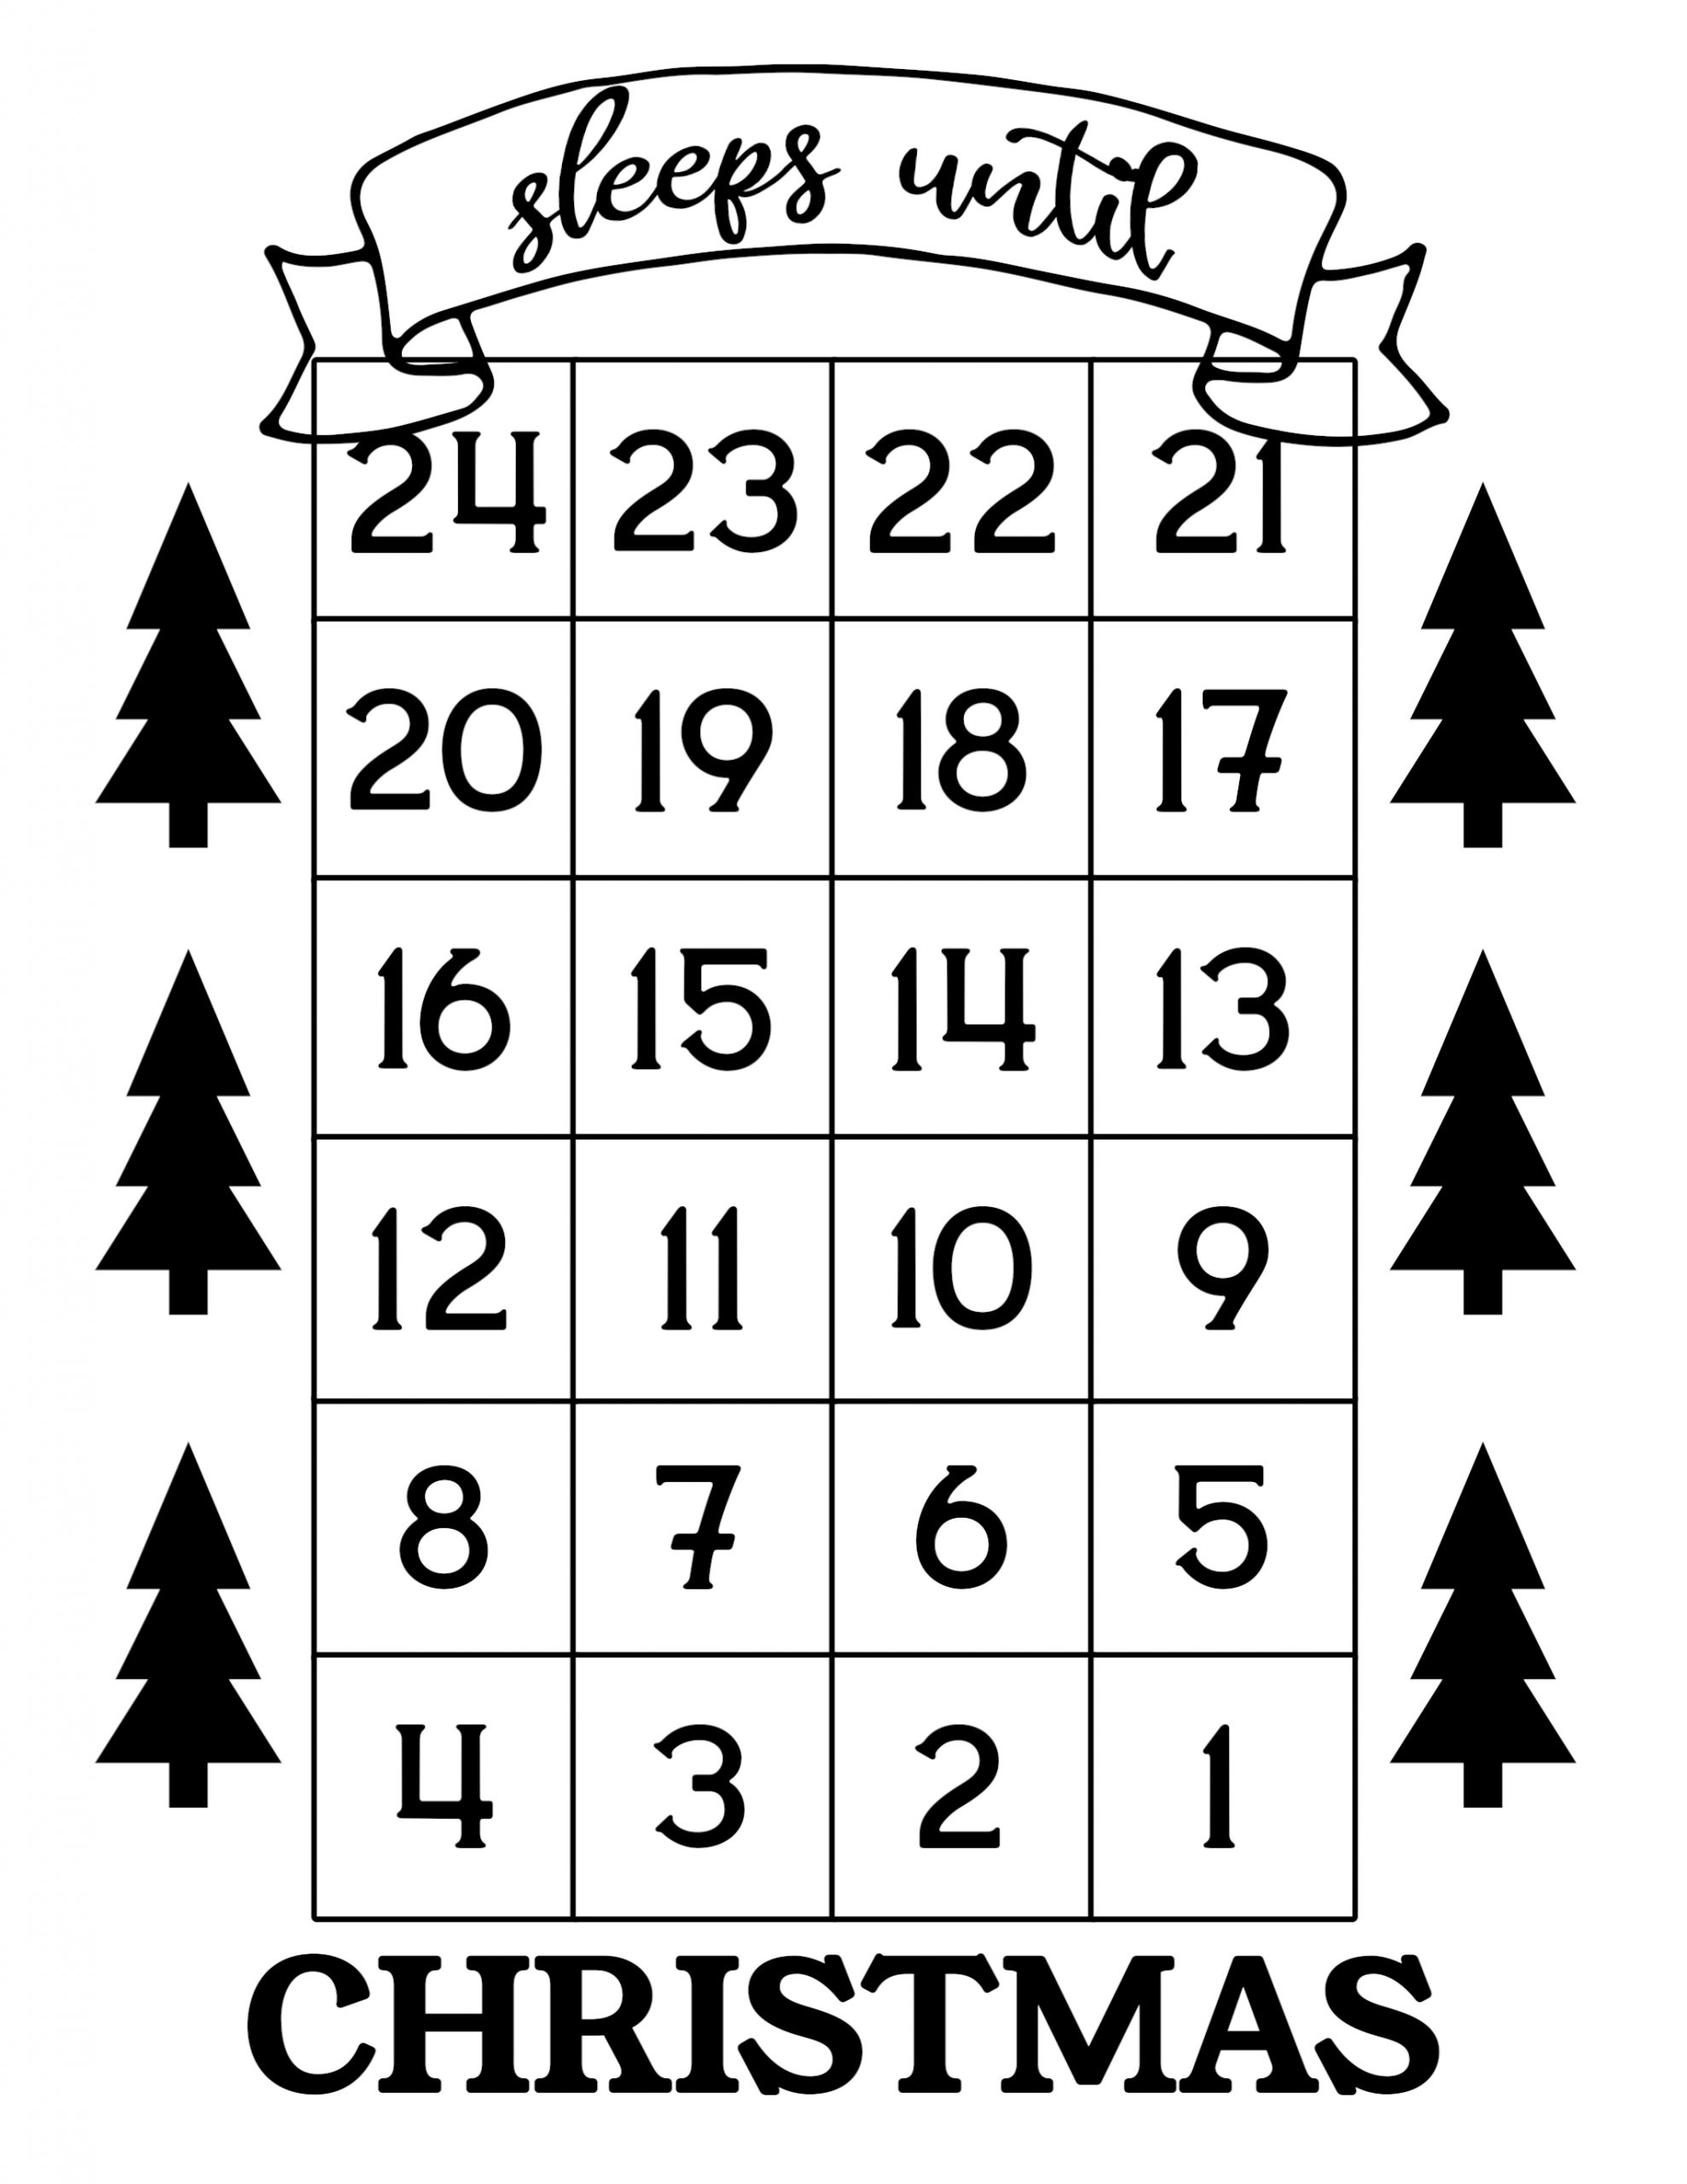 How Many Days Until Christmas Free Printable Paper Trail